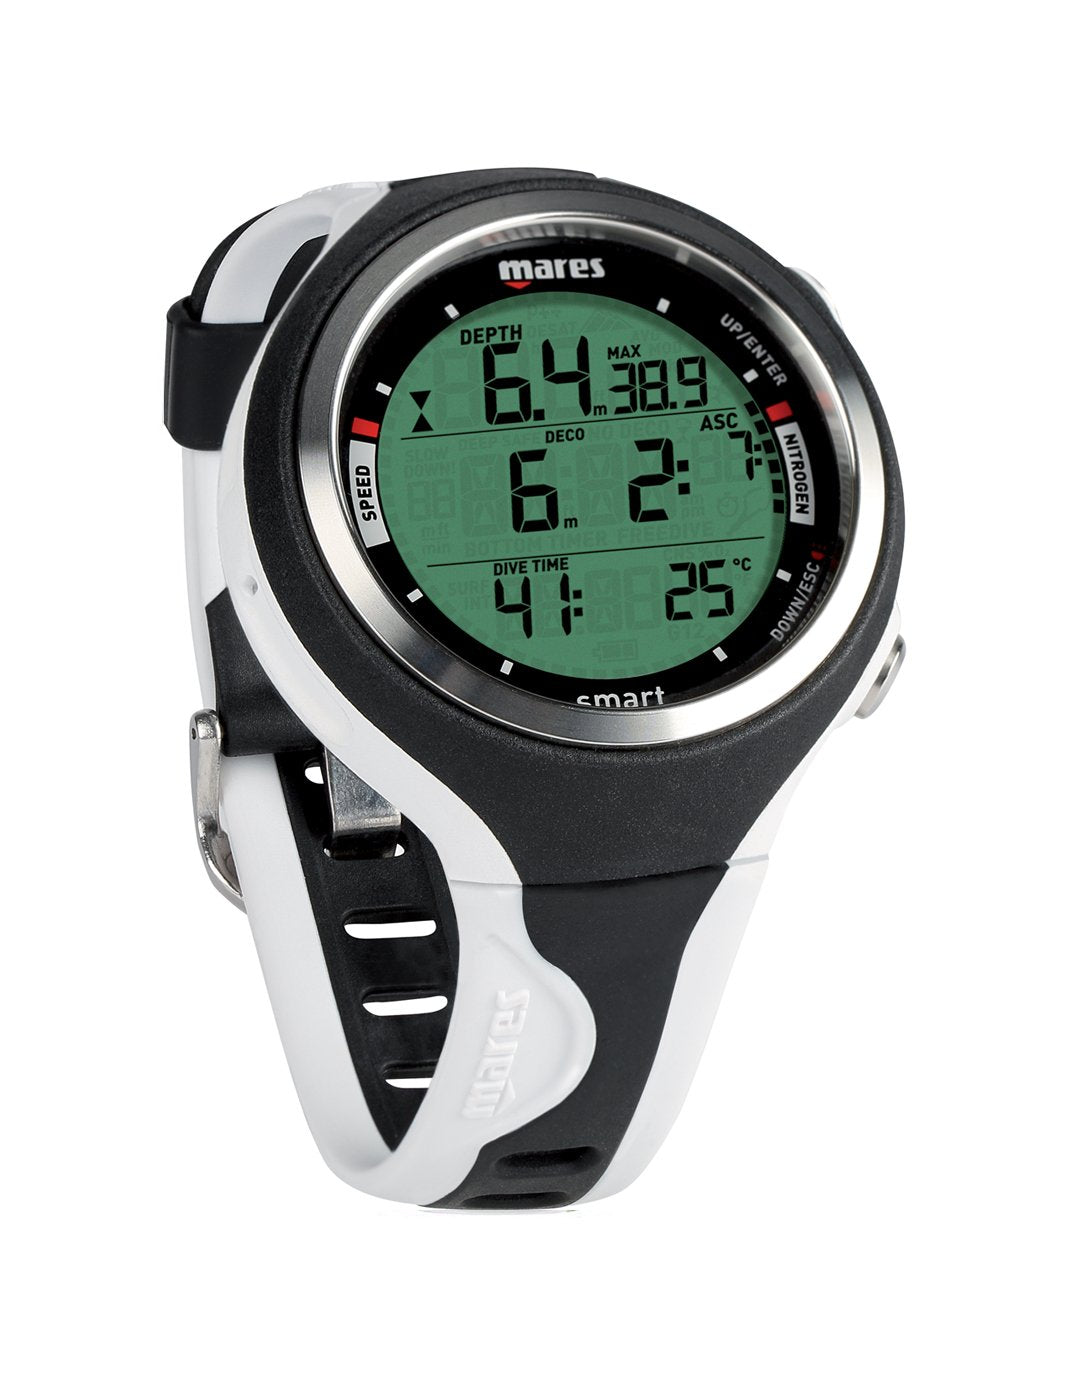 Image of Mares Smart Dive Computer - Red